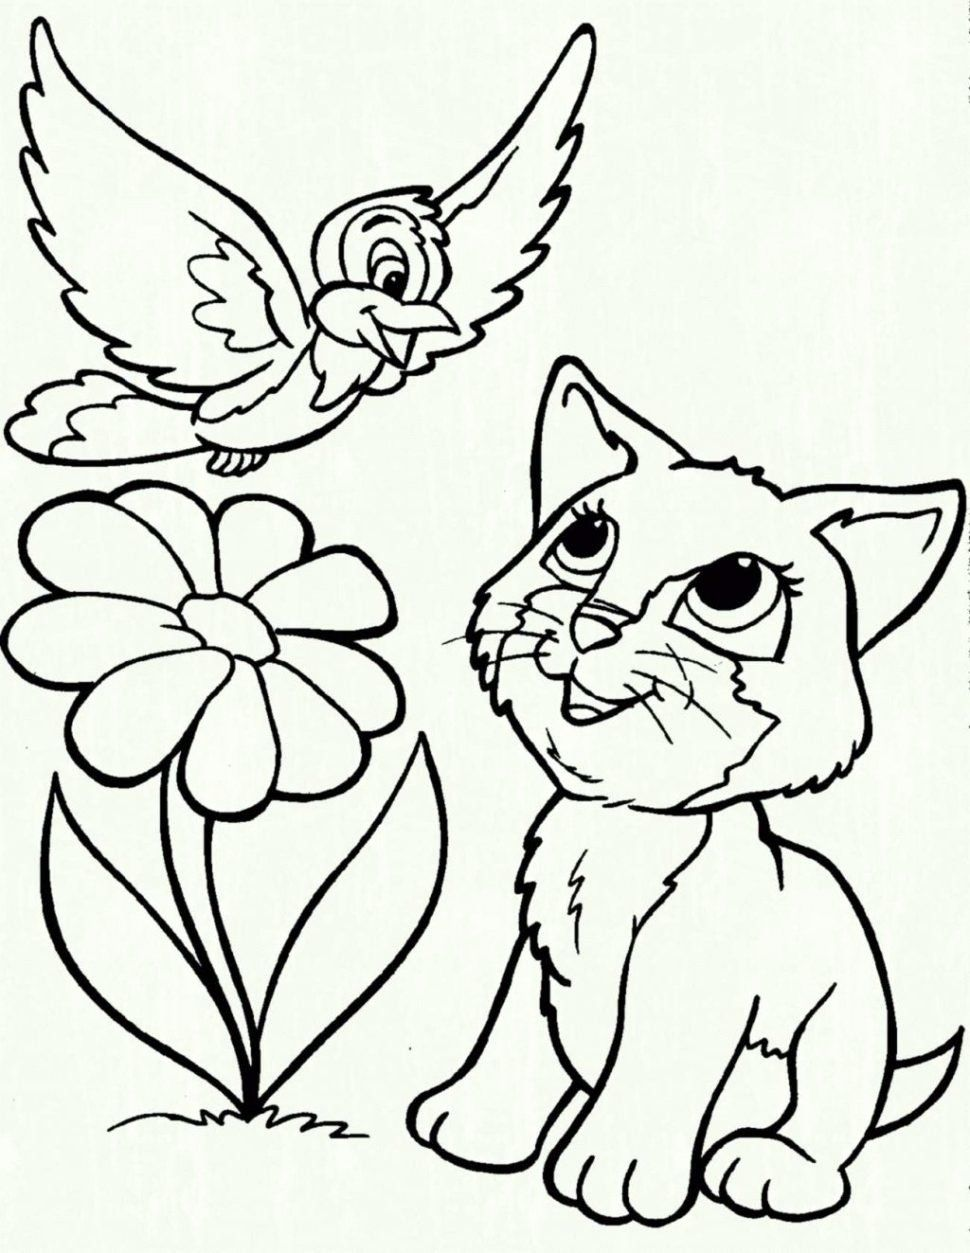 Animal Rescue Coloring Book Beautiful Coloring Books Page Cats And Dogs To Color In Cat Dog Mandalas Para Colorear Animales Gatito Para Colorear Dibujos